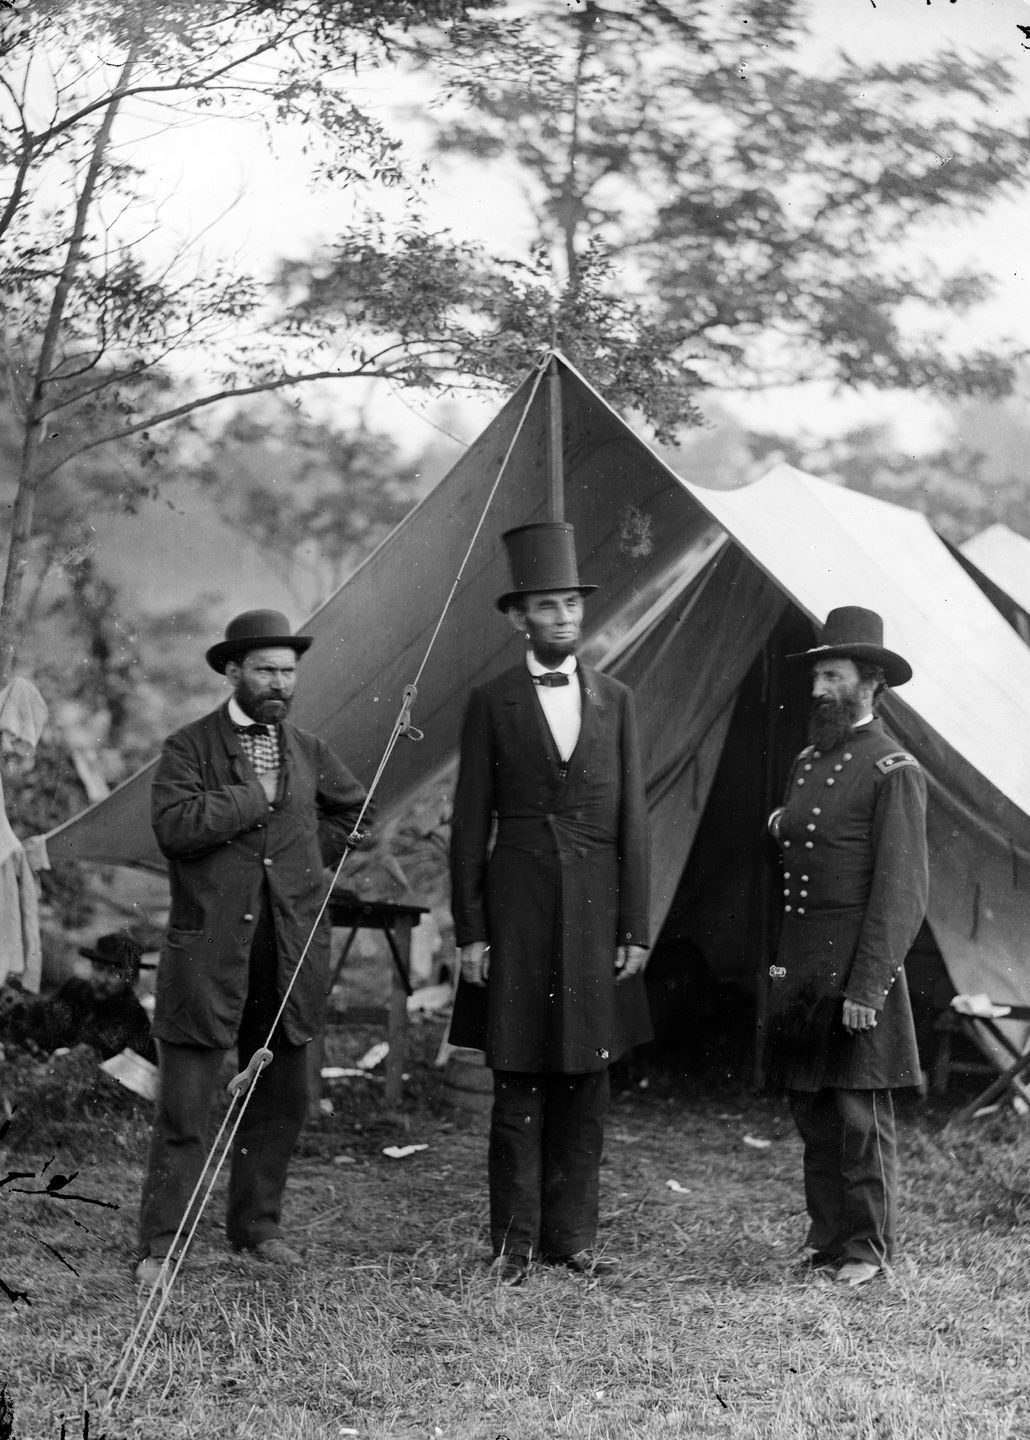 a possible source for watch night President Lincoln near the end of the Civil War